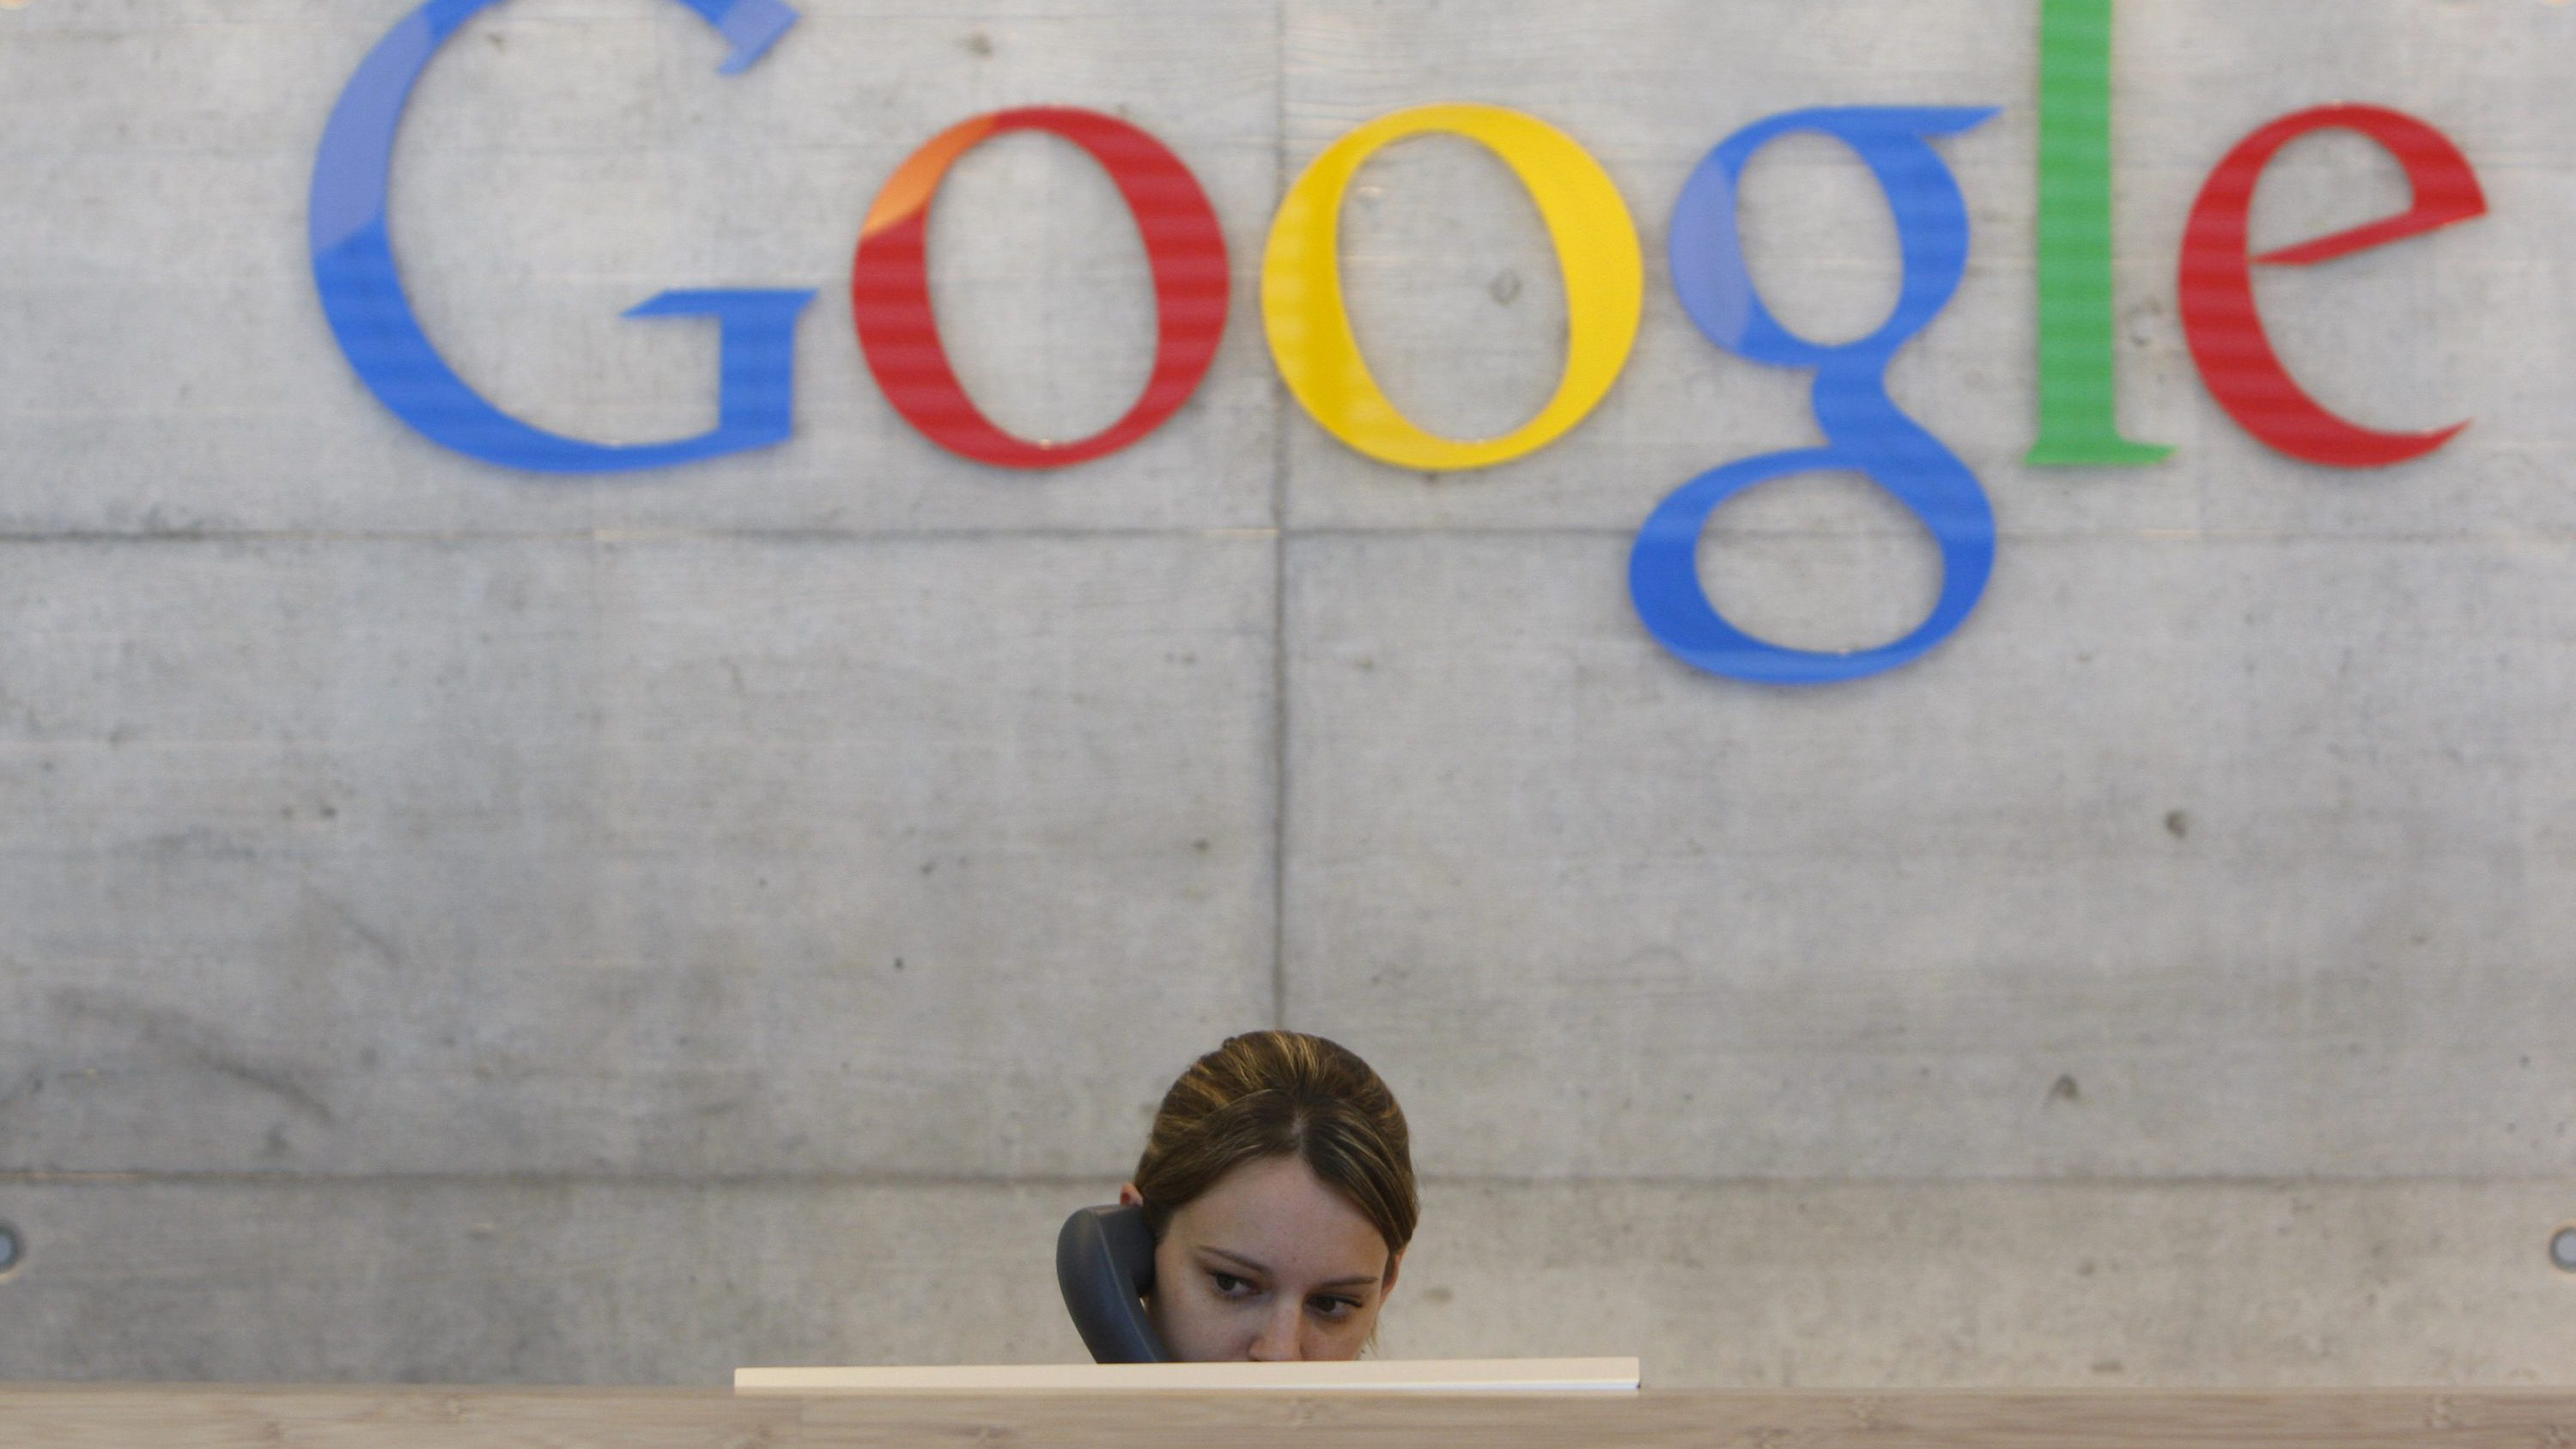 An employee answers phone calls at the switchboard of the Google office in Zurich August 18, 2009. This logo has been updated and is no longer in use.